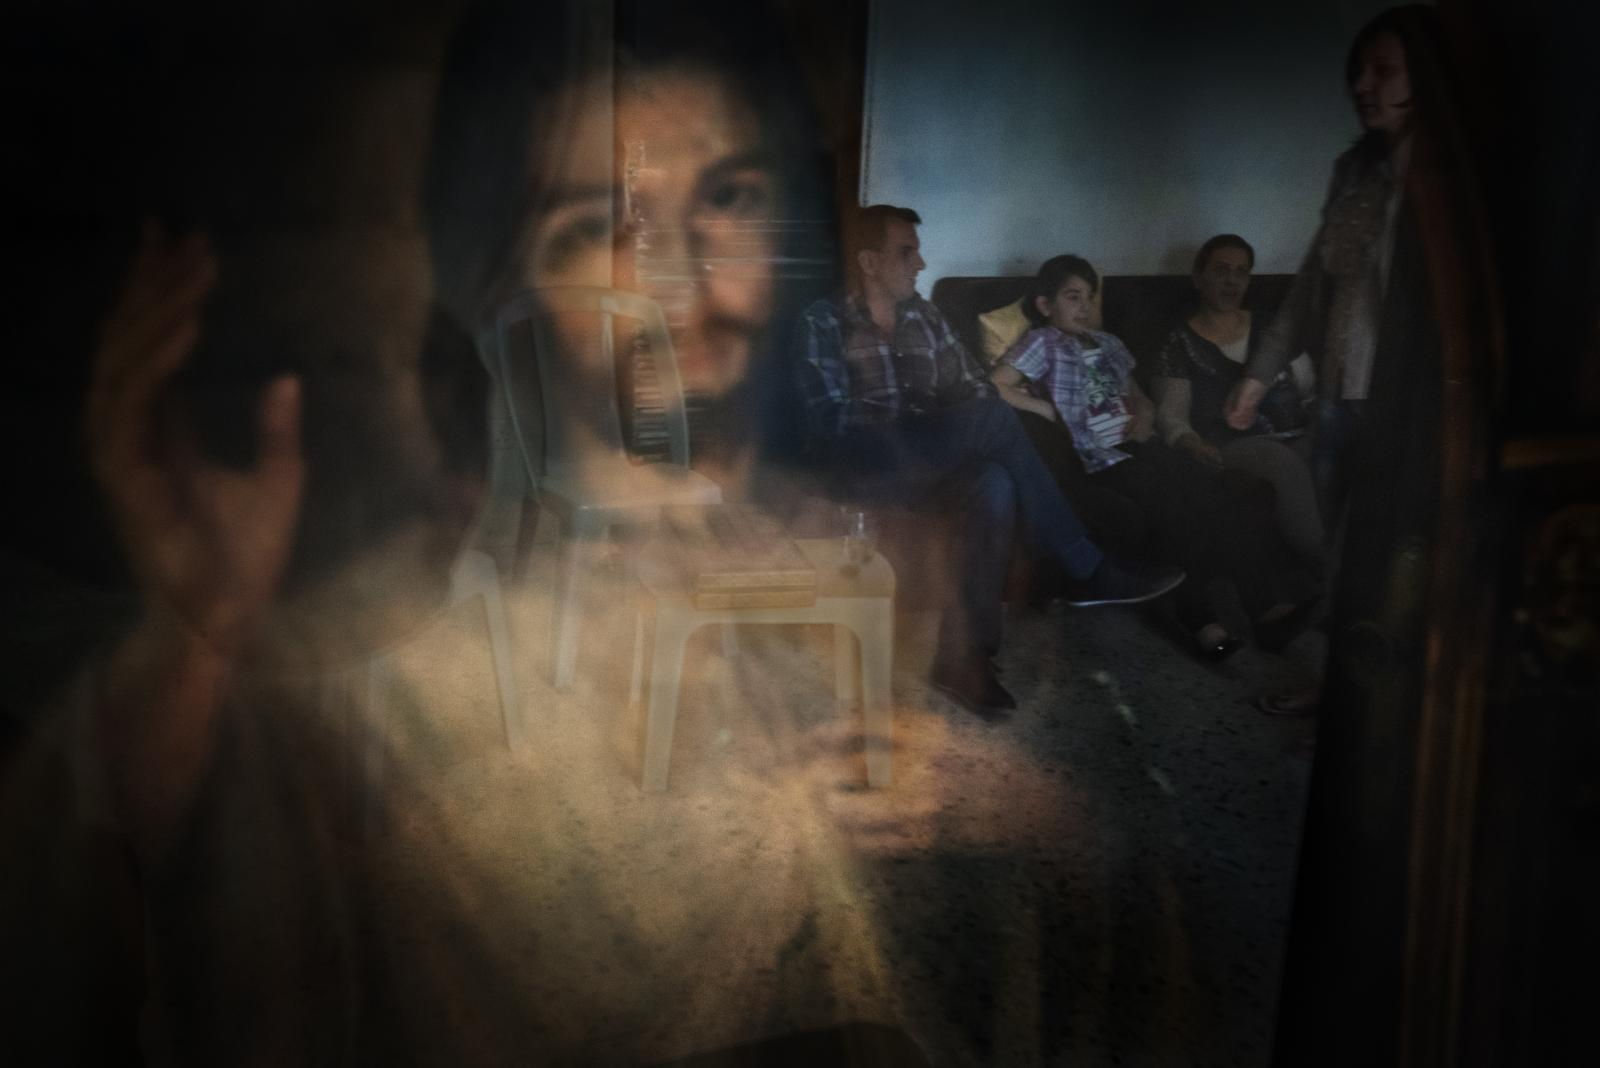 Christian refugees from Mosul (Iraq) in a refugee camp in Amman. They were some of the few people fortunate enough to escape in time with their lives from the hands of ISIS (Jordan, 2015)